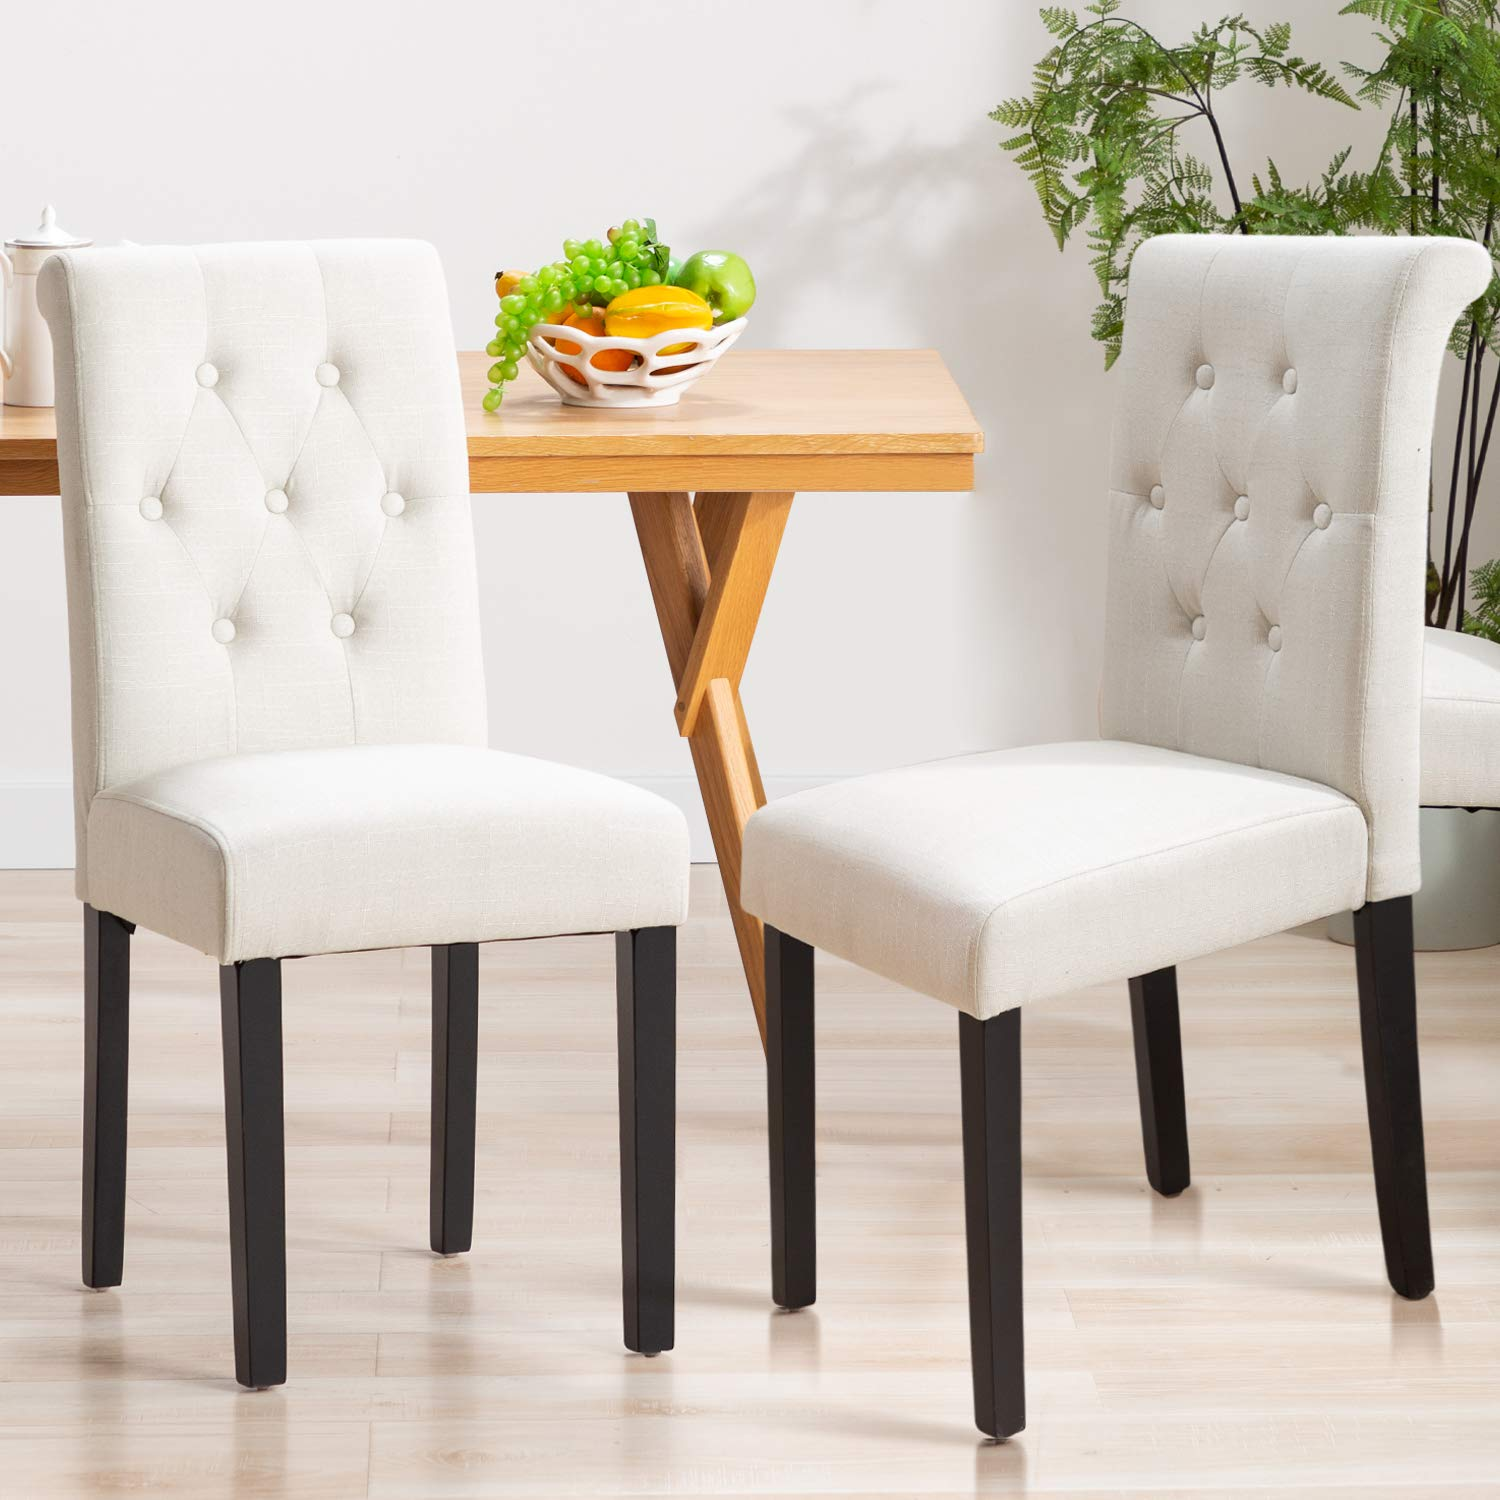 Bonzy Home Fabric Dining Chair, Kitchen Chairs Set of 4 for Home Kitchen,  Button Tufted Dining Room Chairs with Solid Wood Legs (Beige)